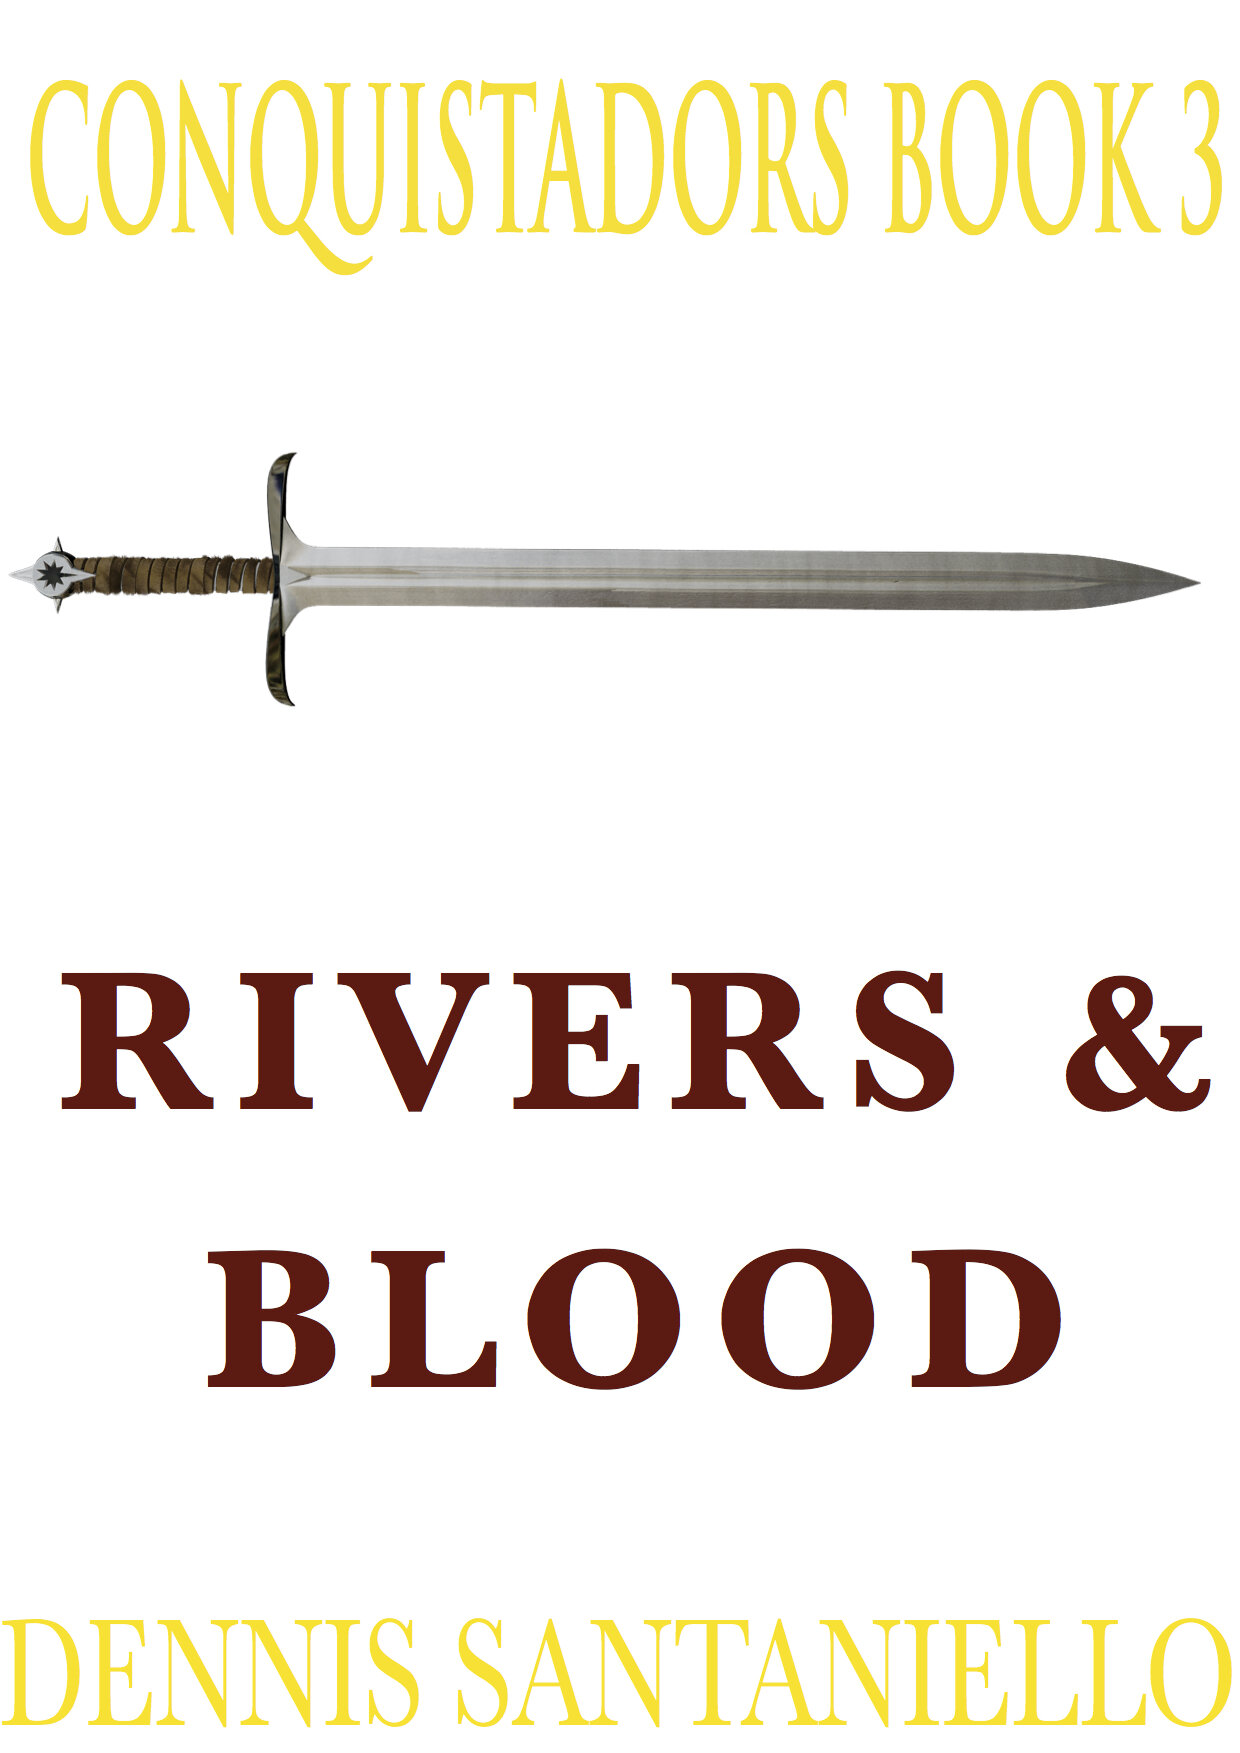 """RIVERS AND BLOOD - BOOK 3 CONQUISTADORS TRILOGYStill plagued by the desert Sardina finds his old comrade from Peru: Hernando de Soto, a ruthless man of pure evil. They play the final chess game of their lives, but as the game continues Sardina discovers Soto's tale: that of conquest, obsession and madness. And as the Soto expedition treks the wide and vast Mississippi River for their savage quest of glory and gold, the kingdoms of Cofitacheque, Coosa, Tuscaloosa, and their people will never be the same.Will Sardina finally find his fortune? All will be revealed in the """"Rivers and Blood""""."""